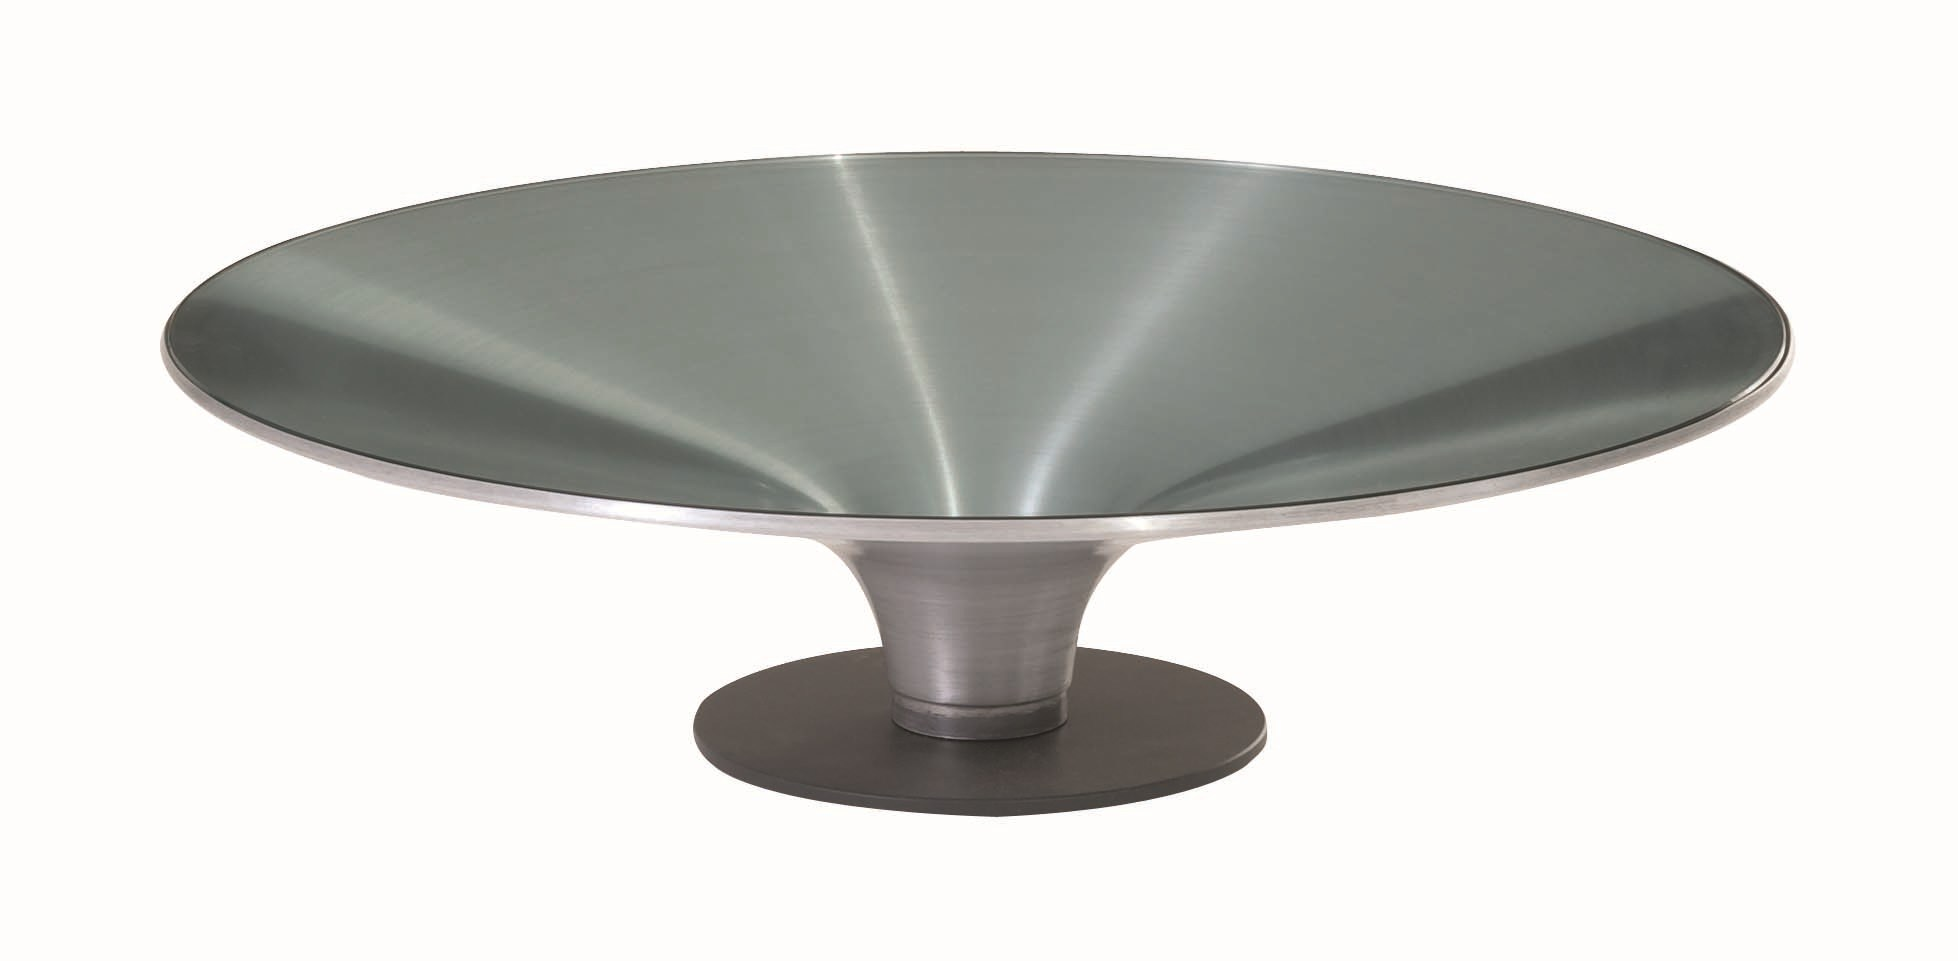 Roche Bobois Ovni Coffee Table Rascalartsnyc